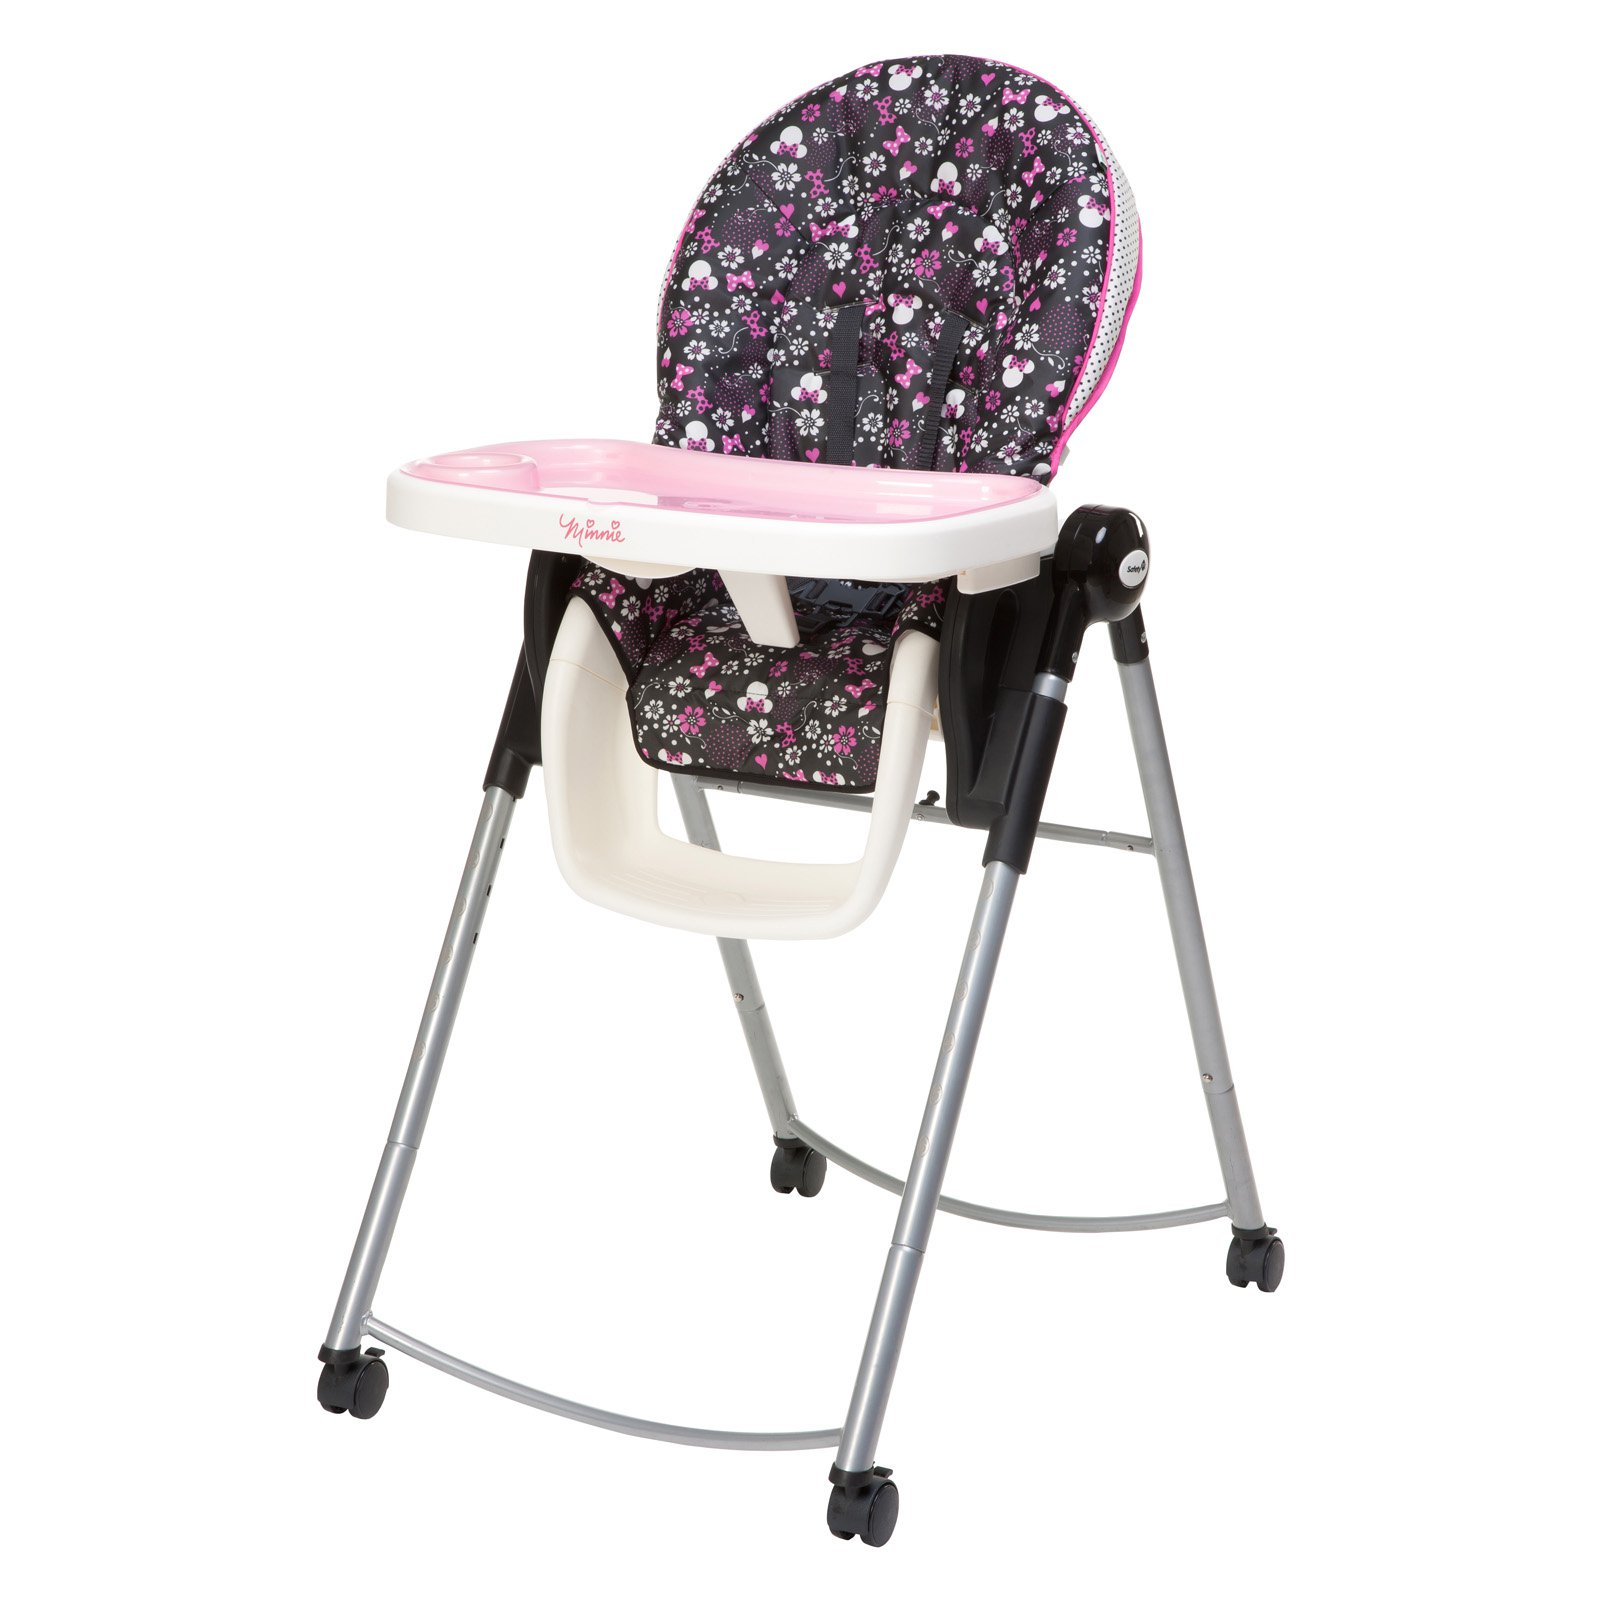 Disney Baby Adjustable High Chair - Minnie Pop